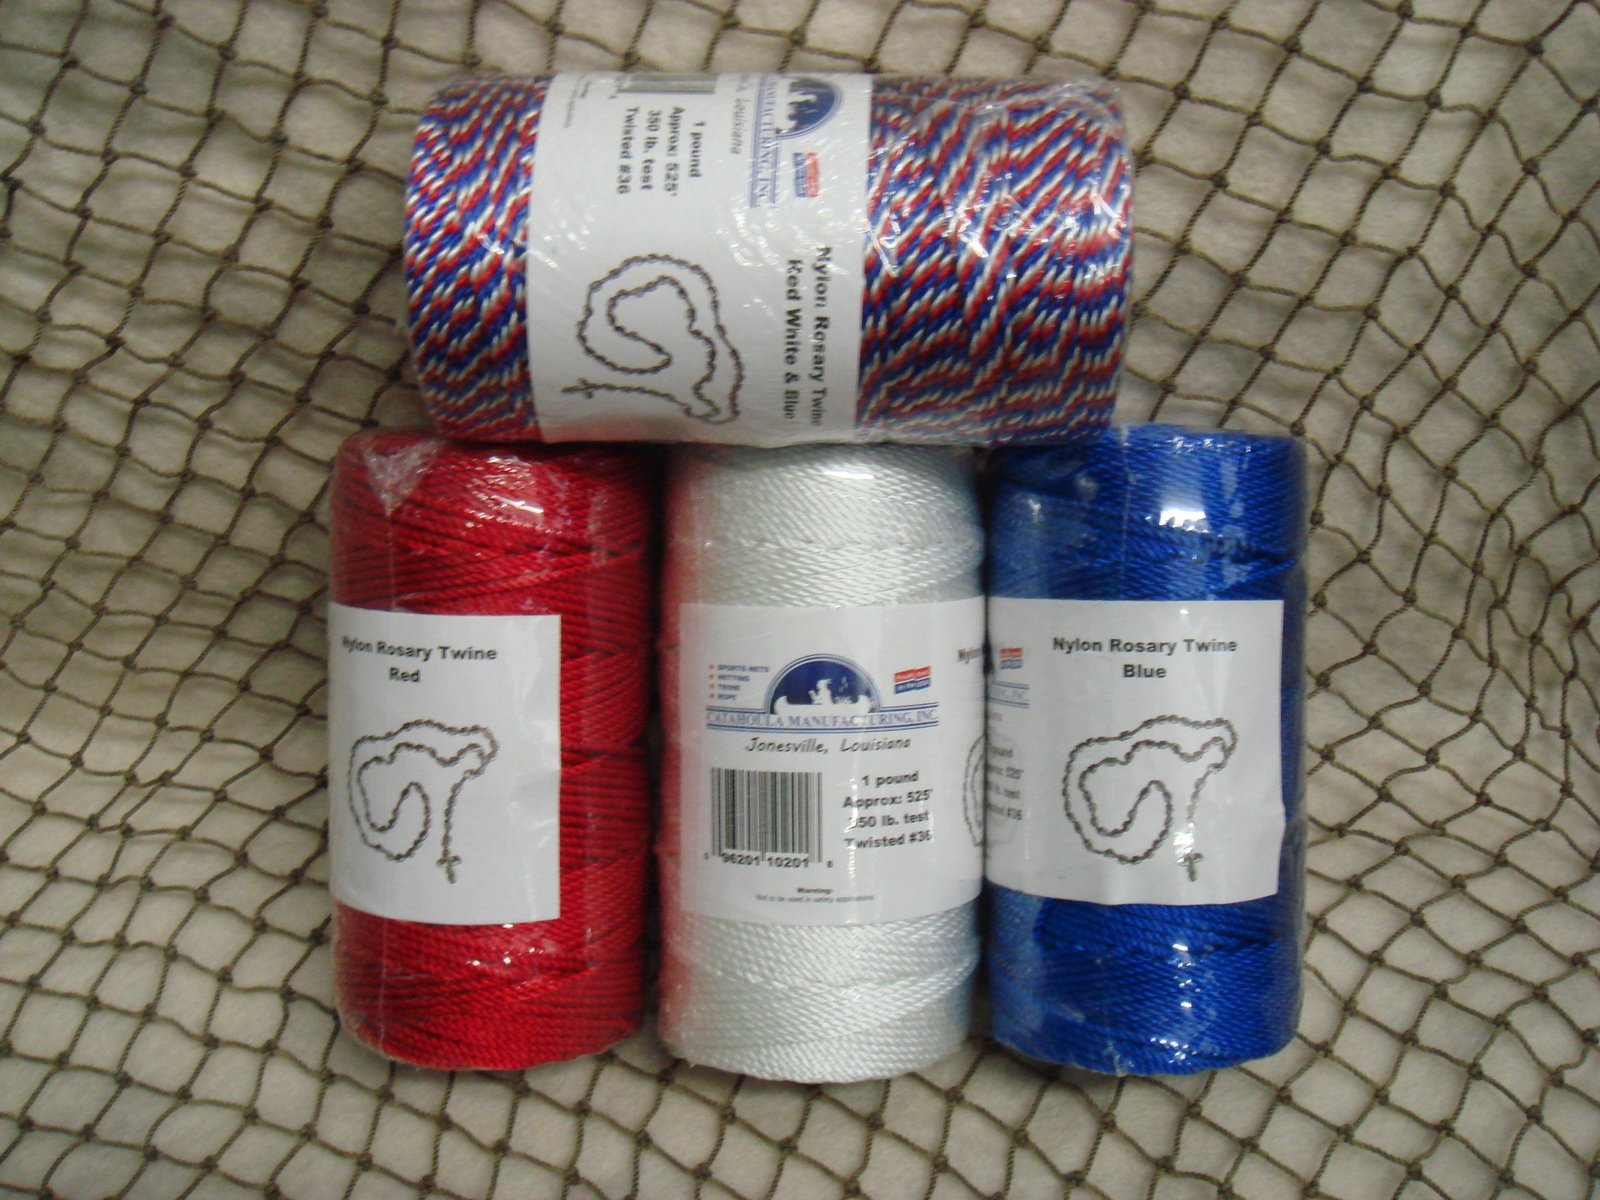 Rosary Twine, Size 36, available in 14 colors (Assorted, 2 White, 10 Mixed) by CMI